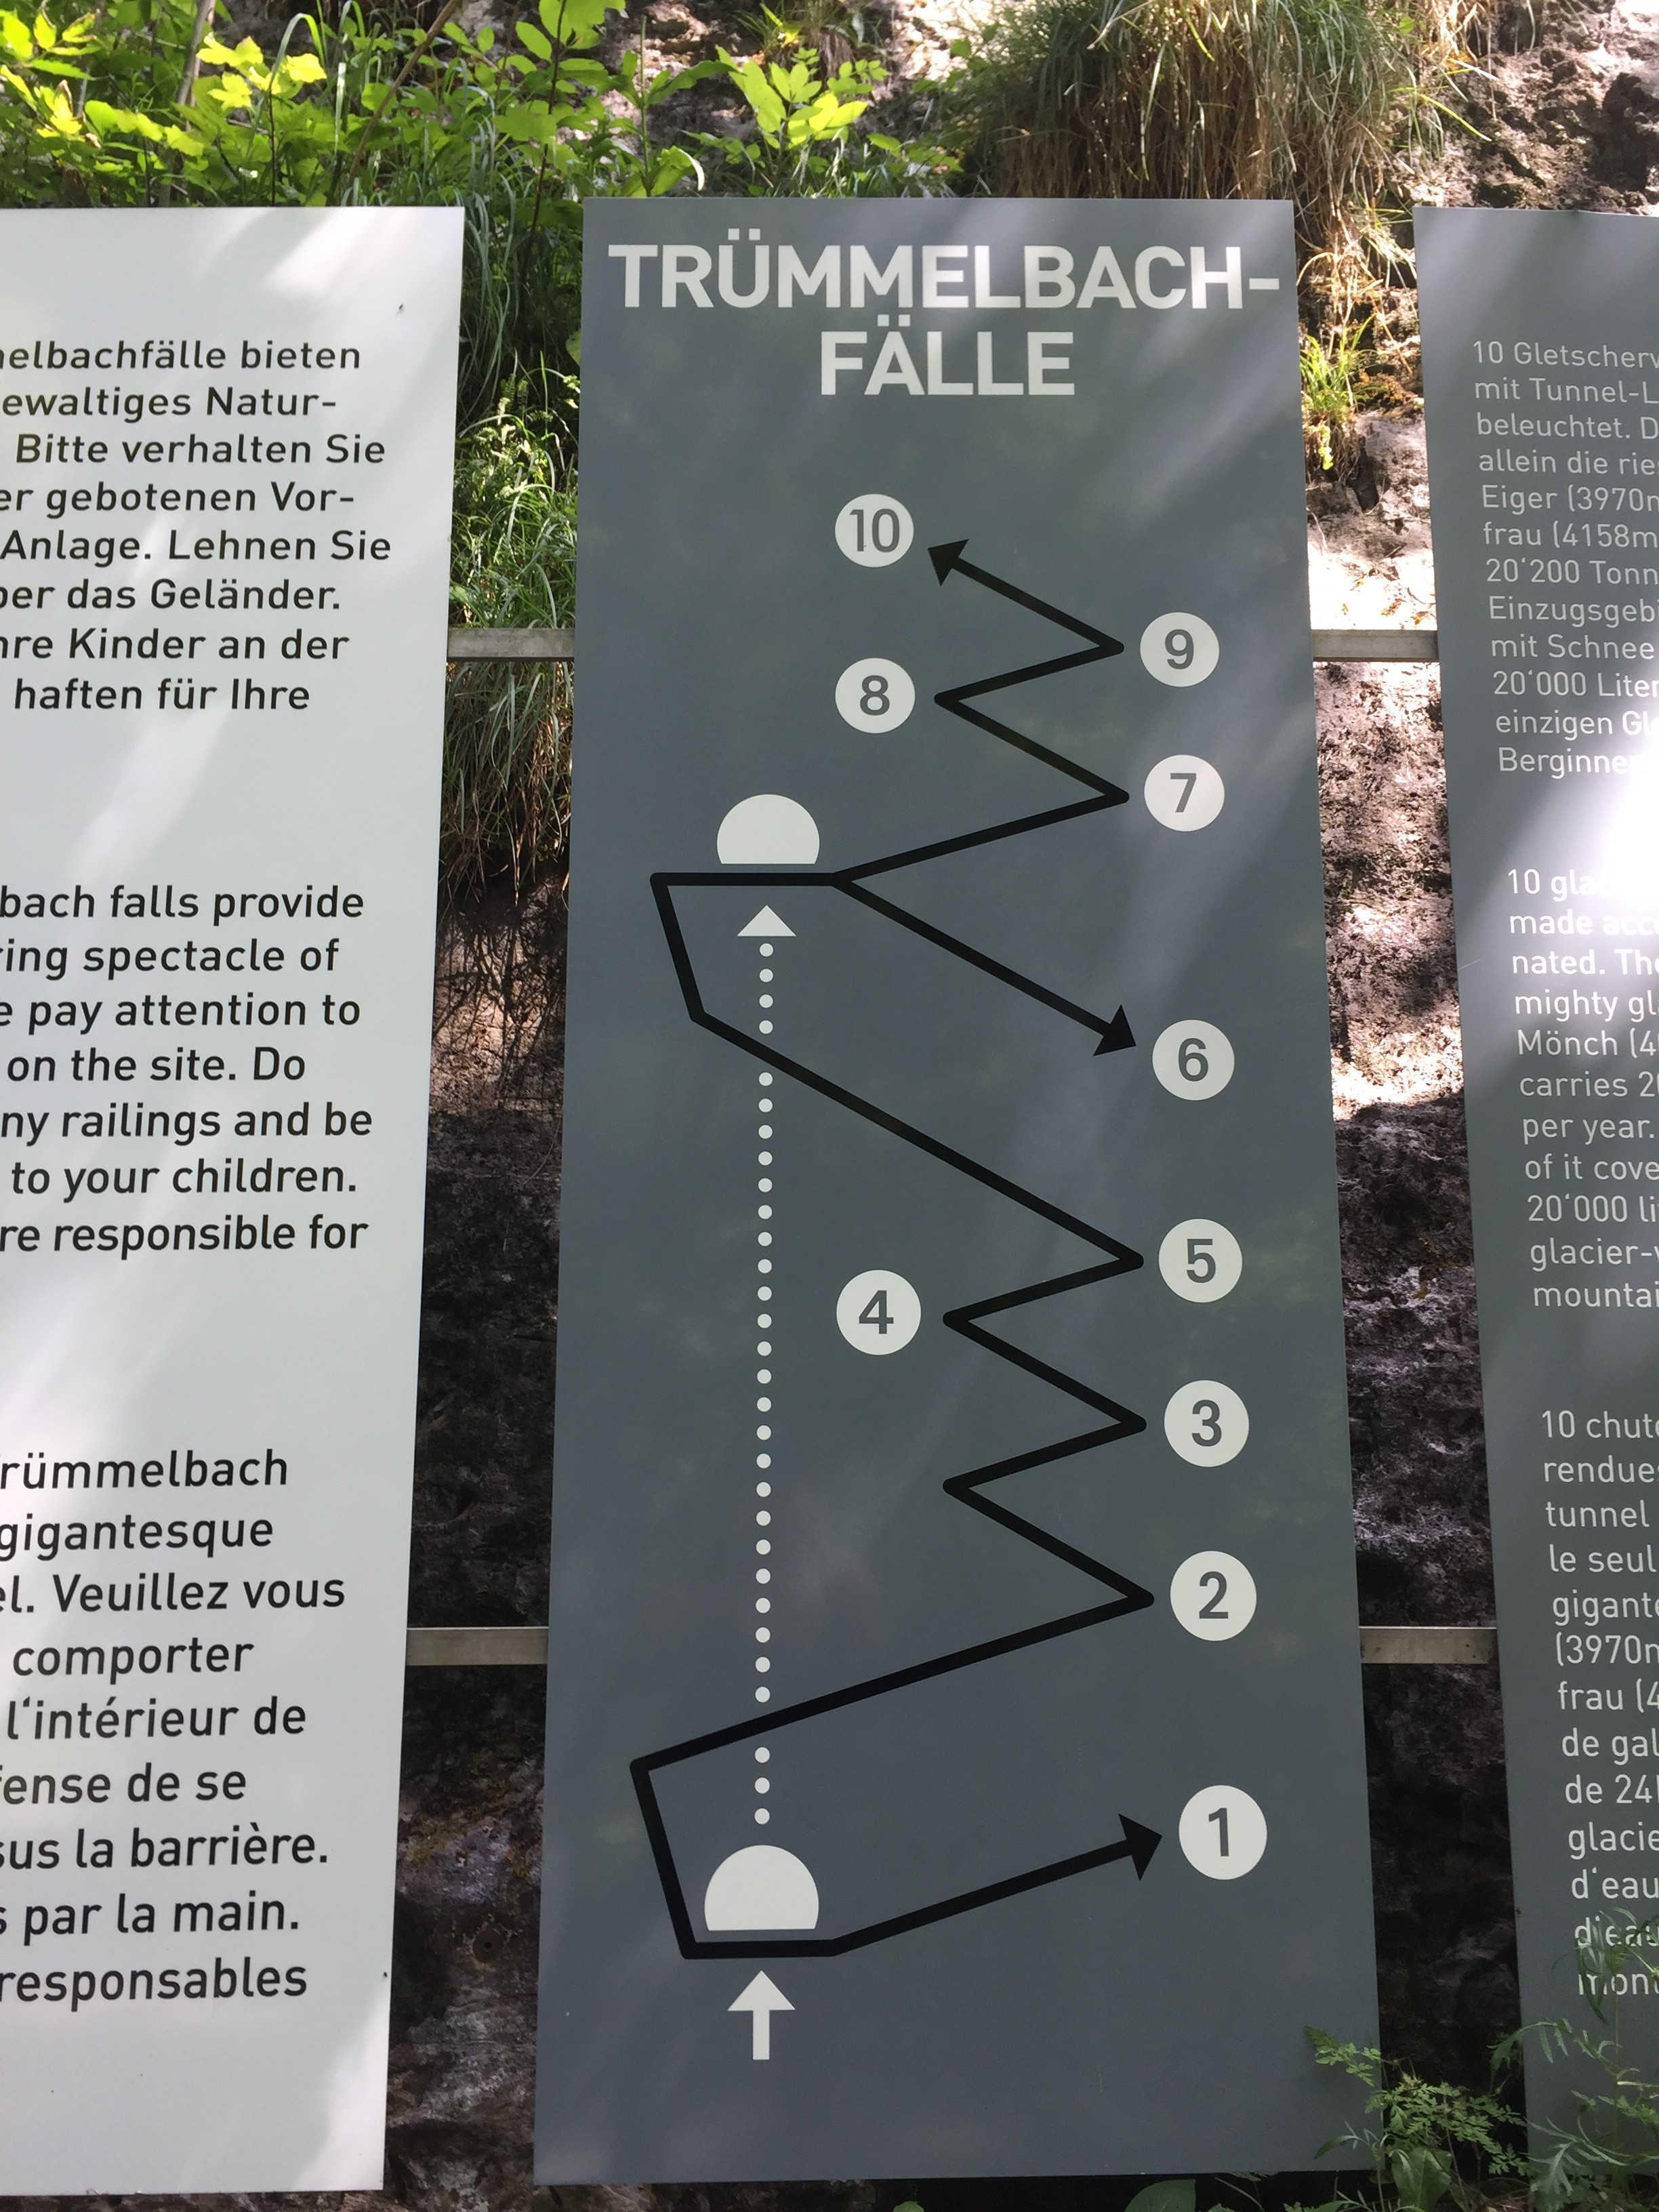 A map breakdown of Trummelbach Falls - you can see the numbers corresponding to different 'levels' as you go up or down the side of the mountain next to the waterfall